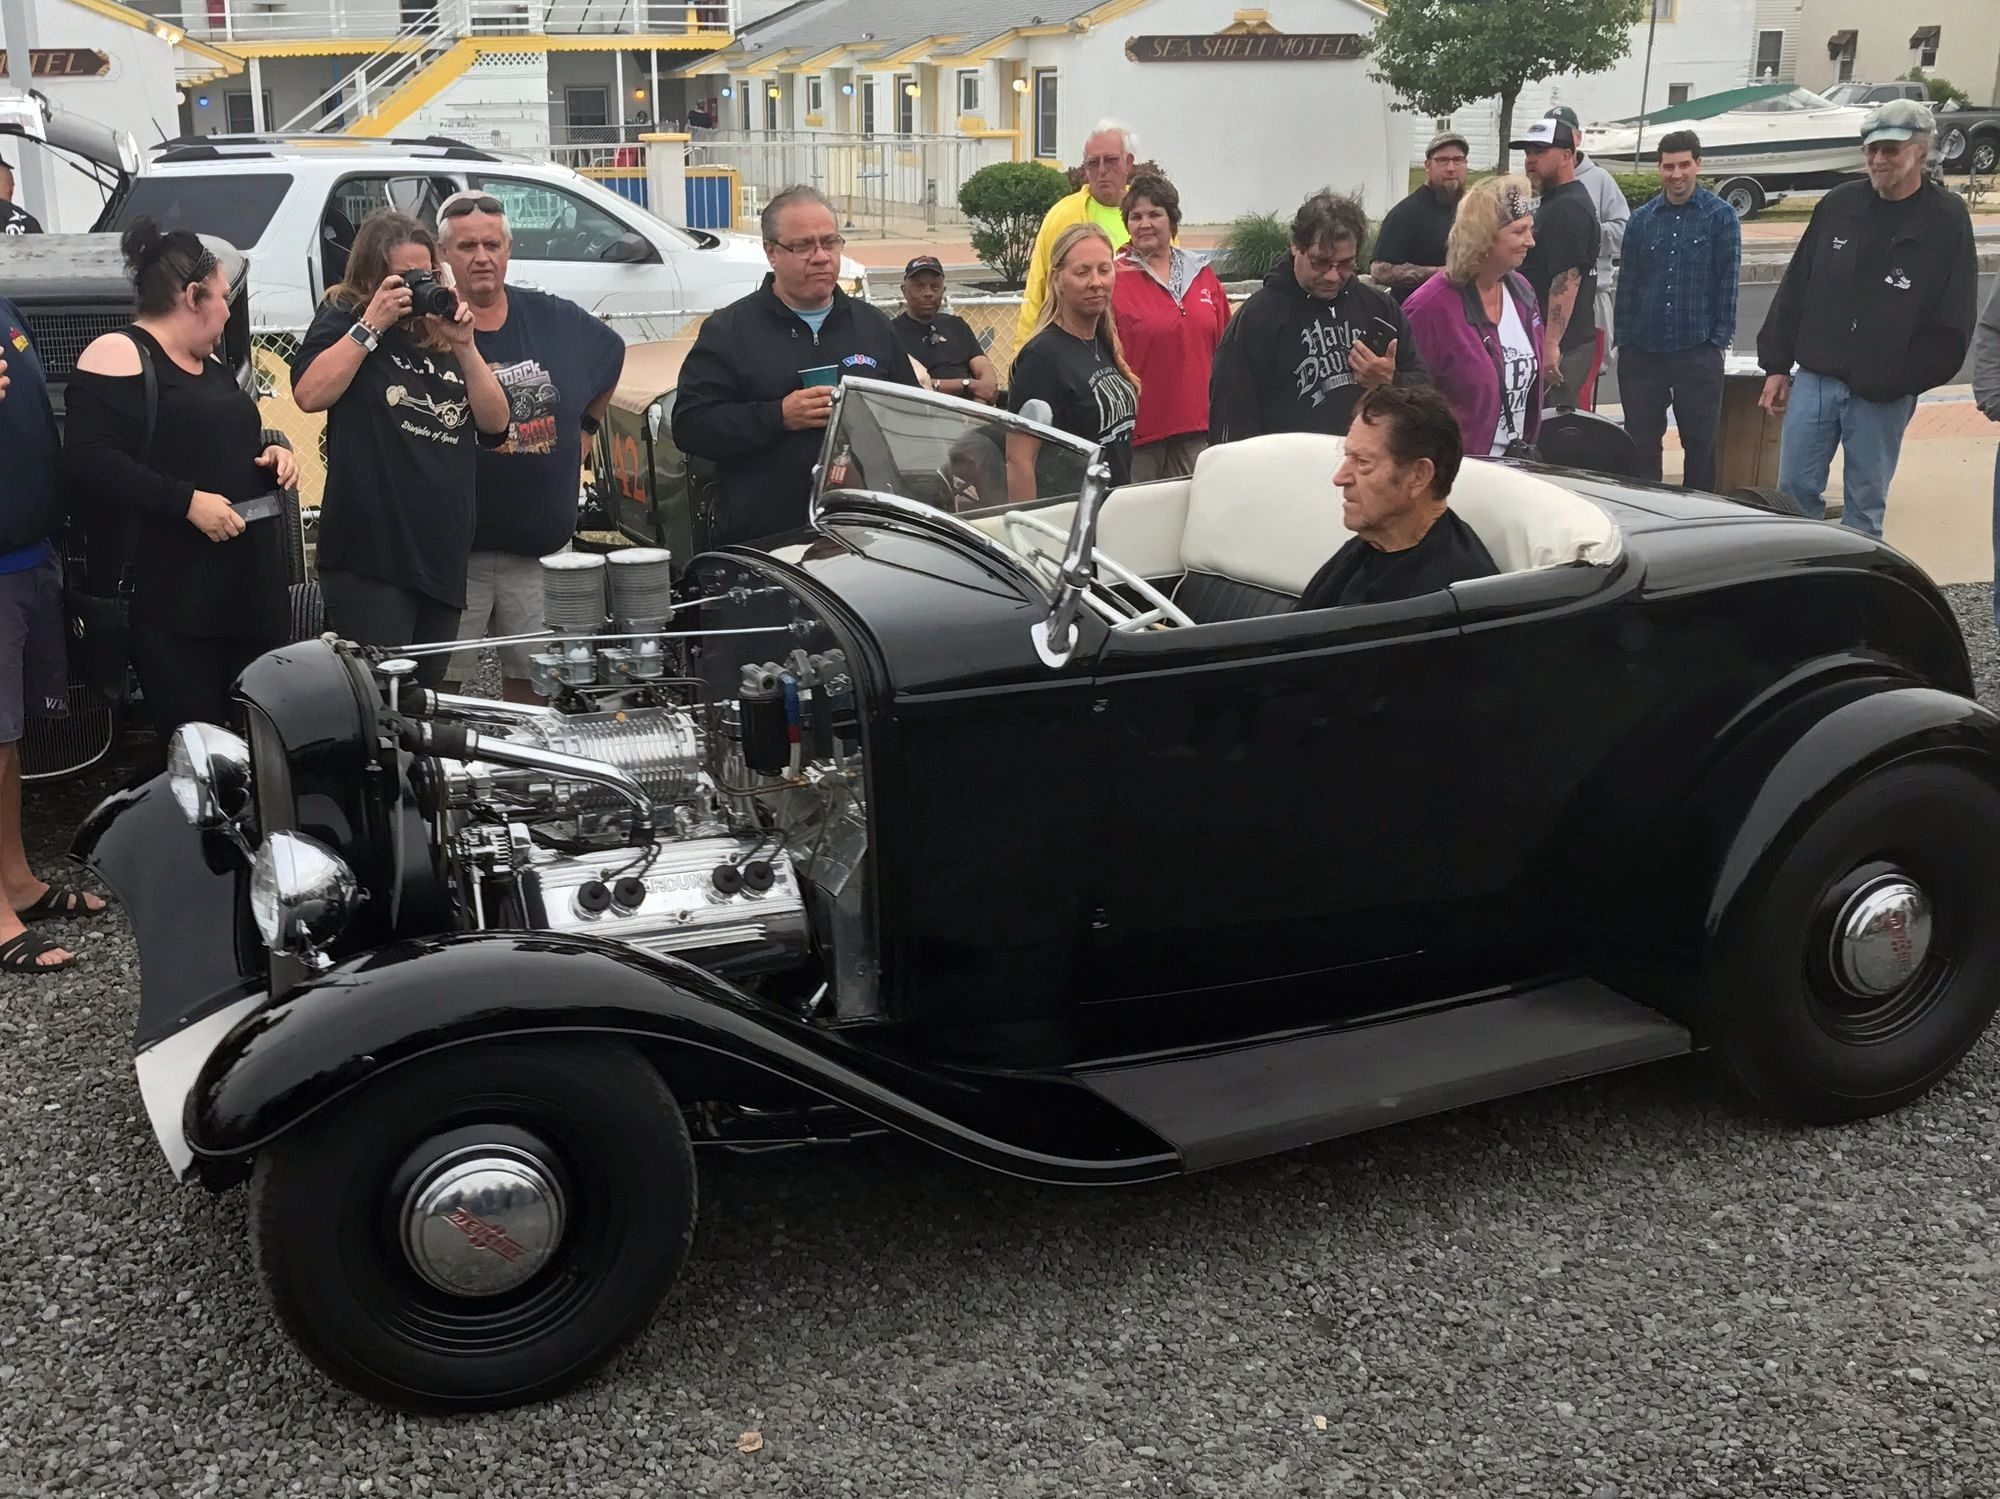 Gene, in a '32 Ford Roadster he helped build, now owned by Rob Ida. Photos by Kevin Carlson unless otherwise noted.